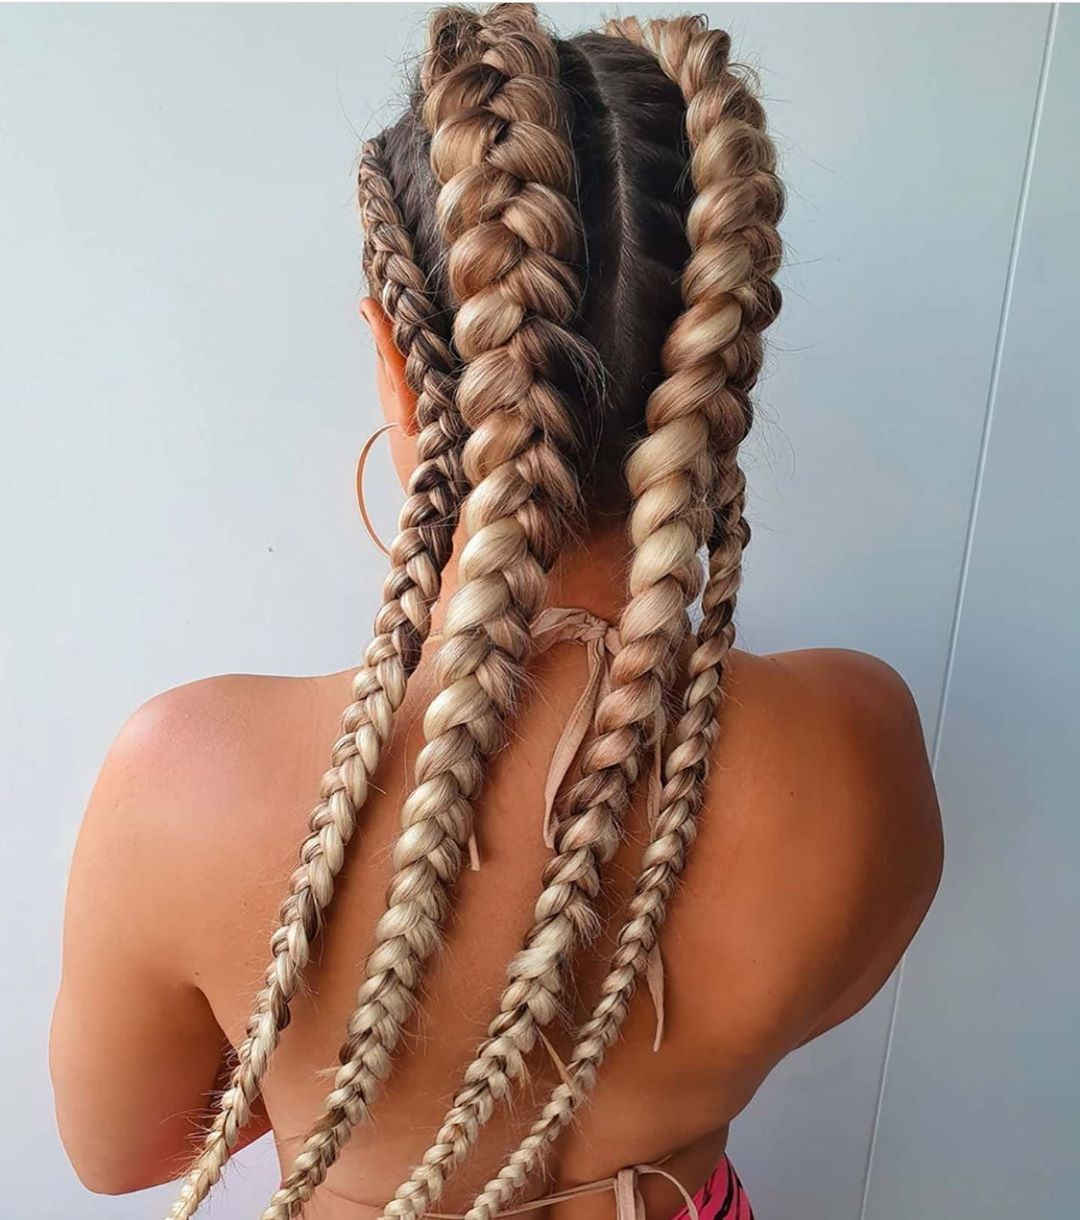 Classic Magic Ponytail Hair Extensions In 2020 Hair Styles